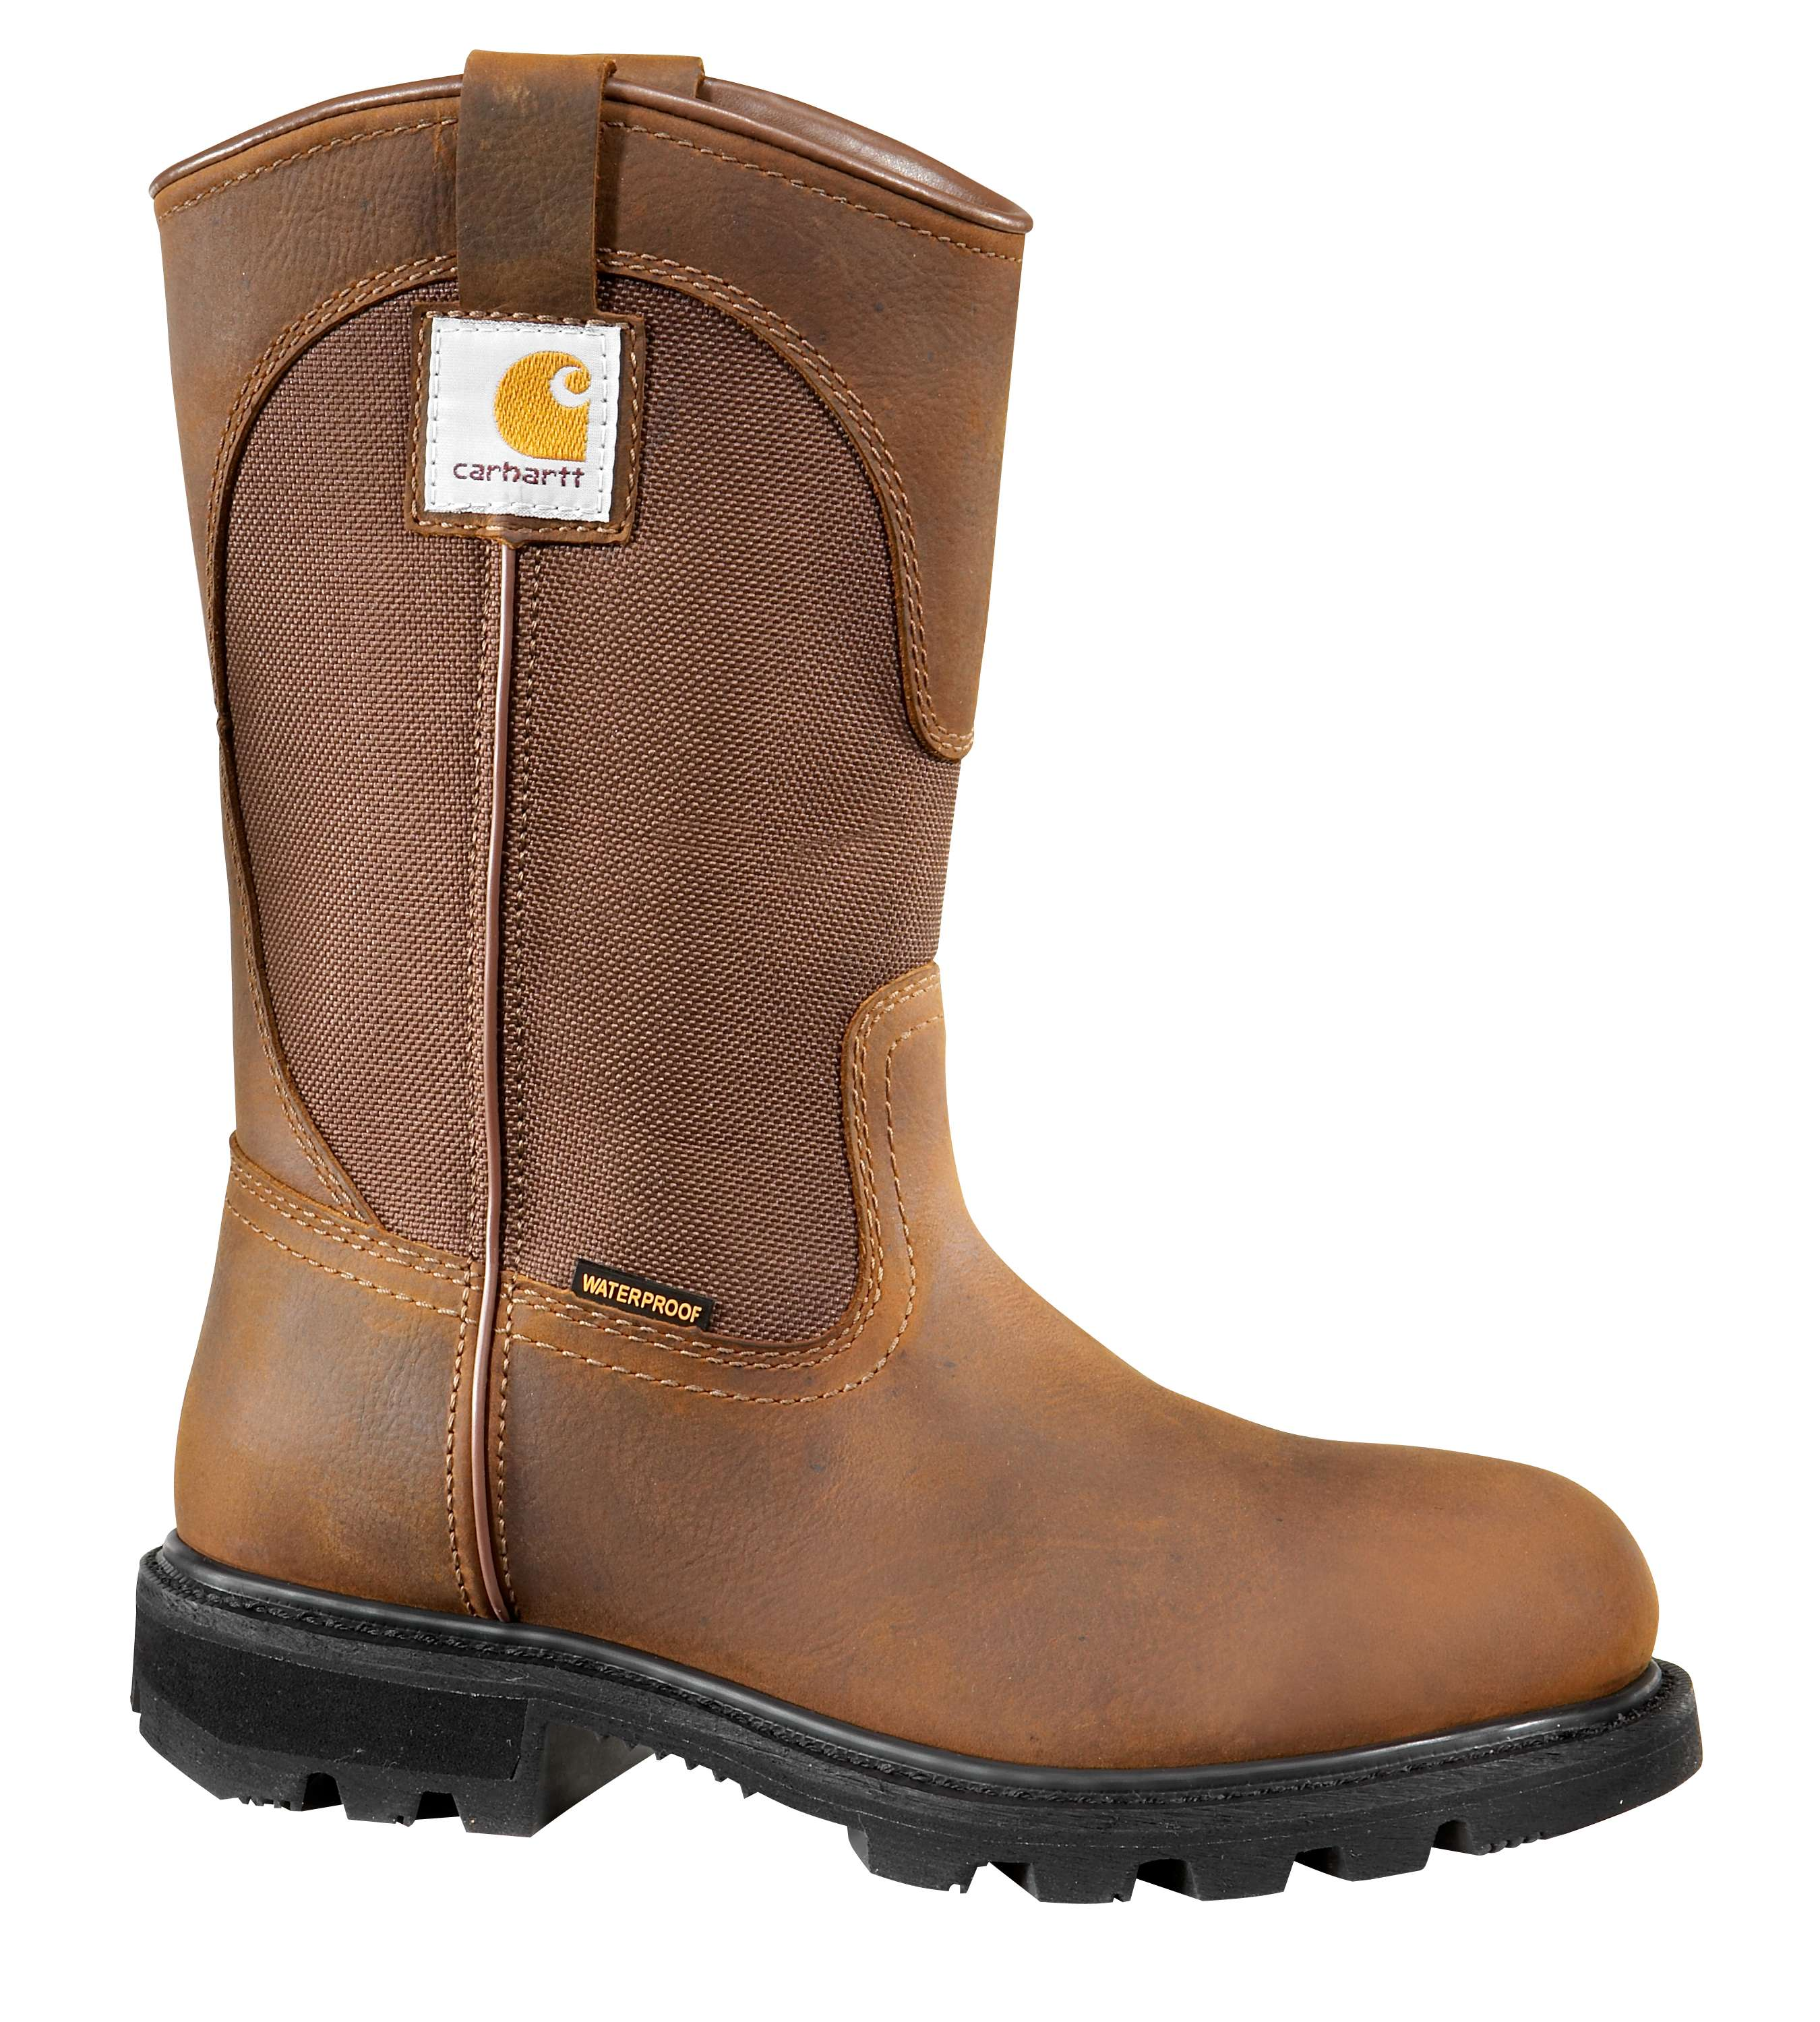 10-Inch Non-Safety Toe Wellington Boot